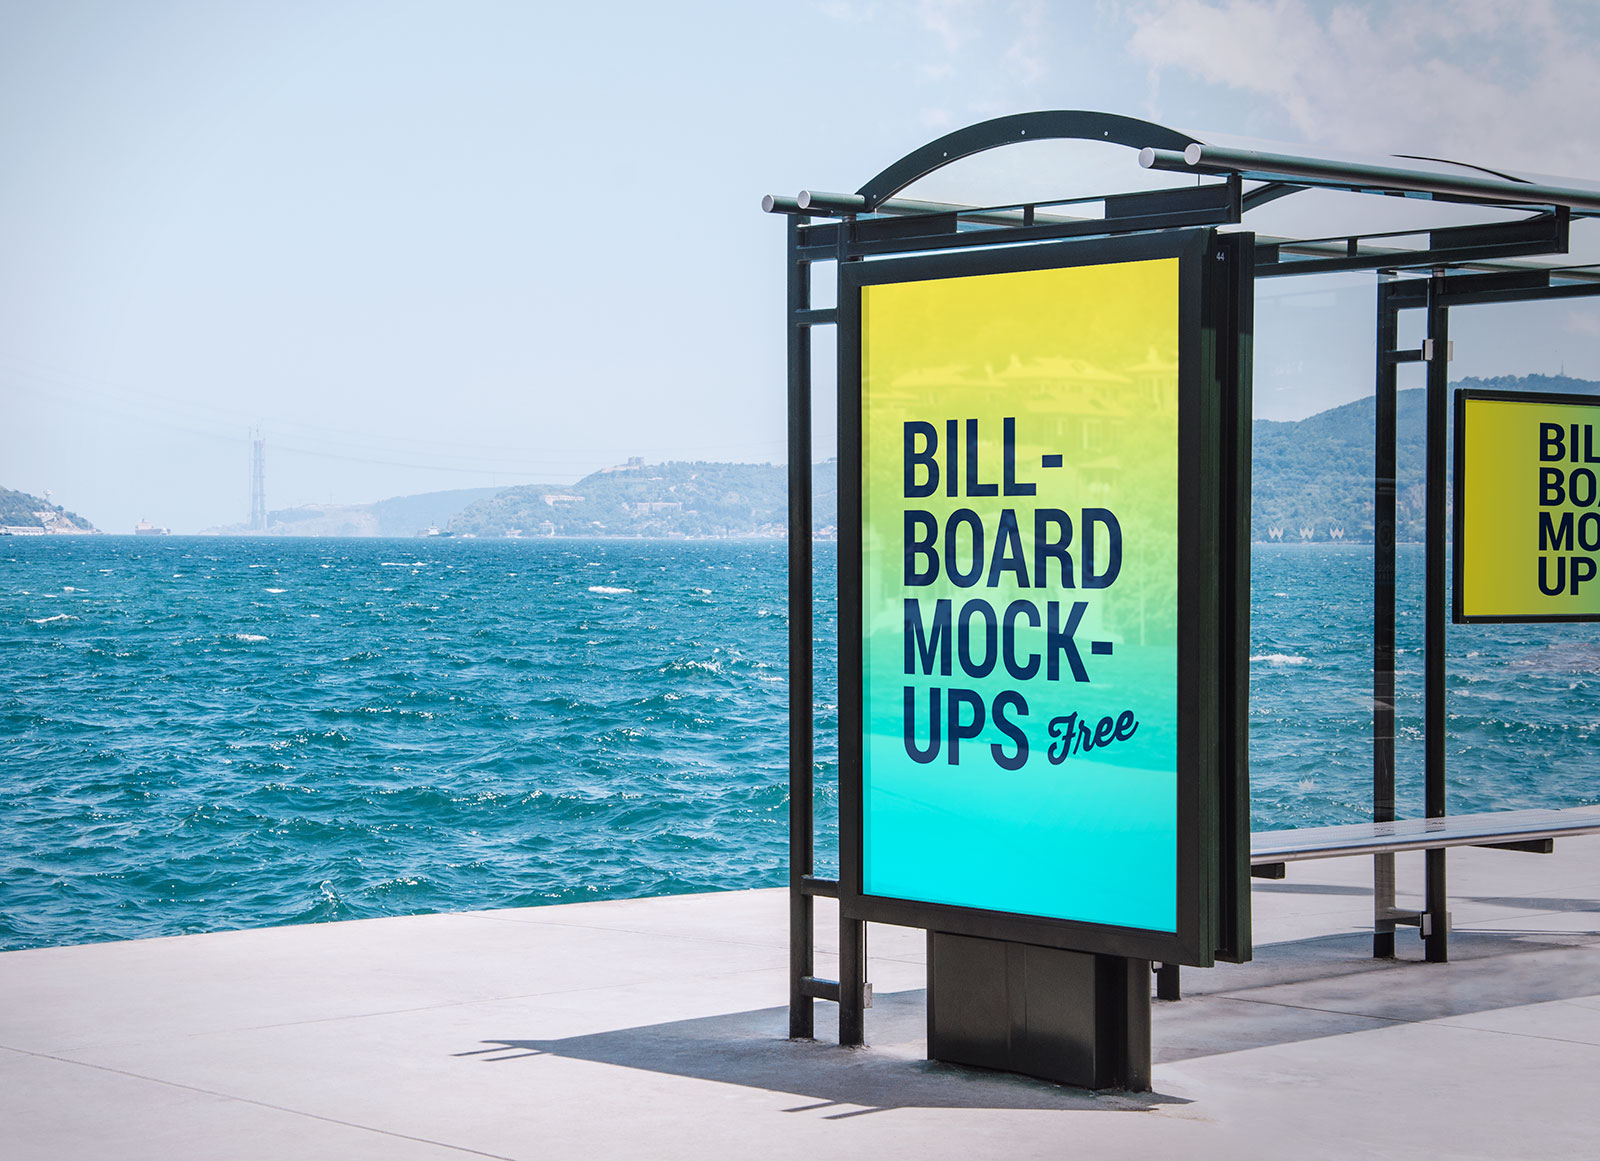 2-Free-Bus-Stop-&-Roadside-Billboard-Mockup-PSD-Files-2